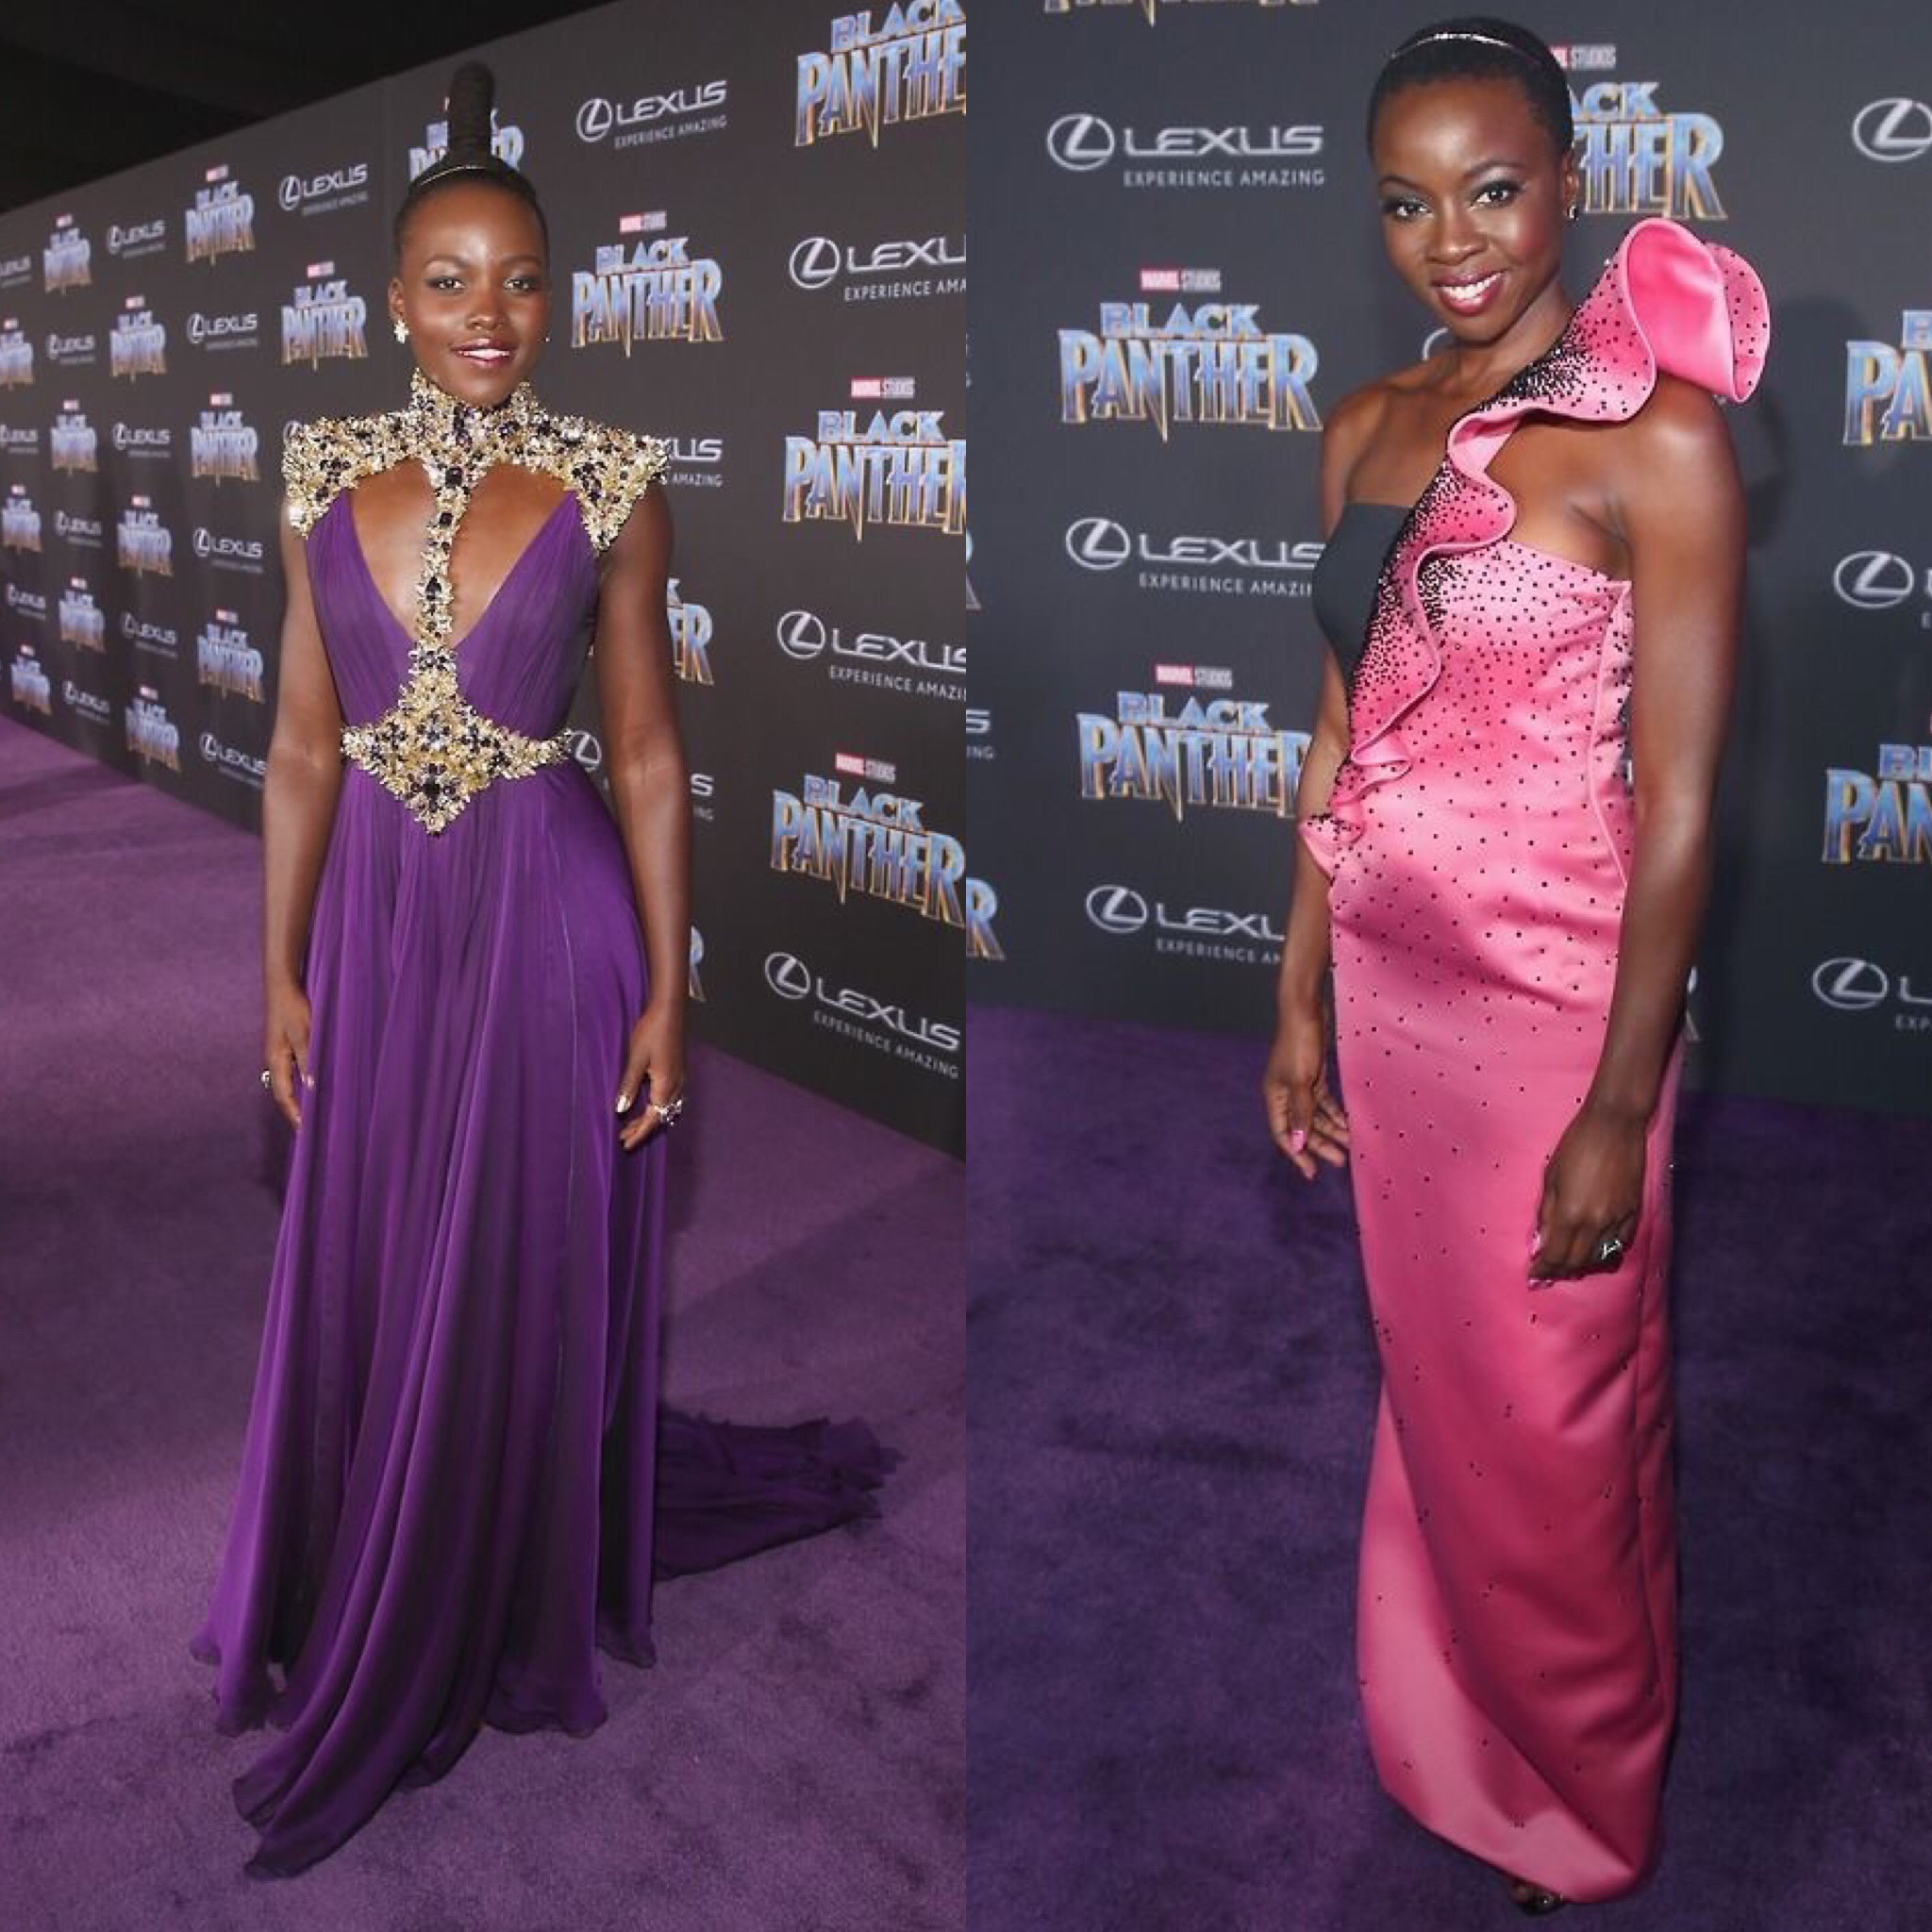 Round Table Discussion With Lupita Nyong'o & Danai Gurira From Black Panther